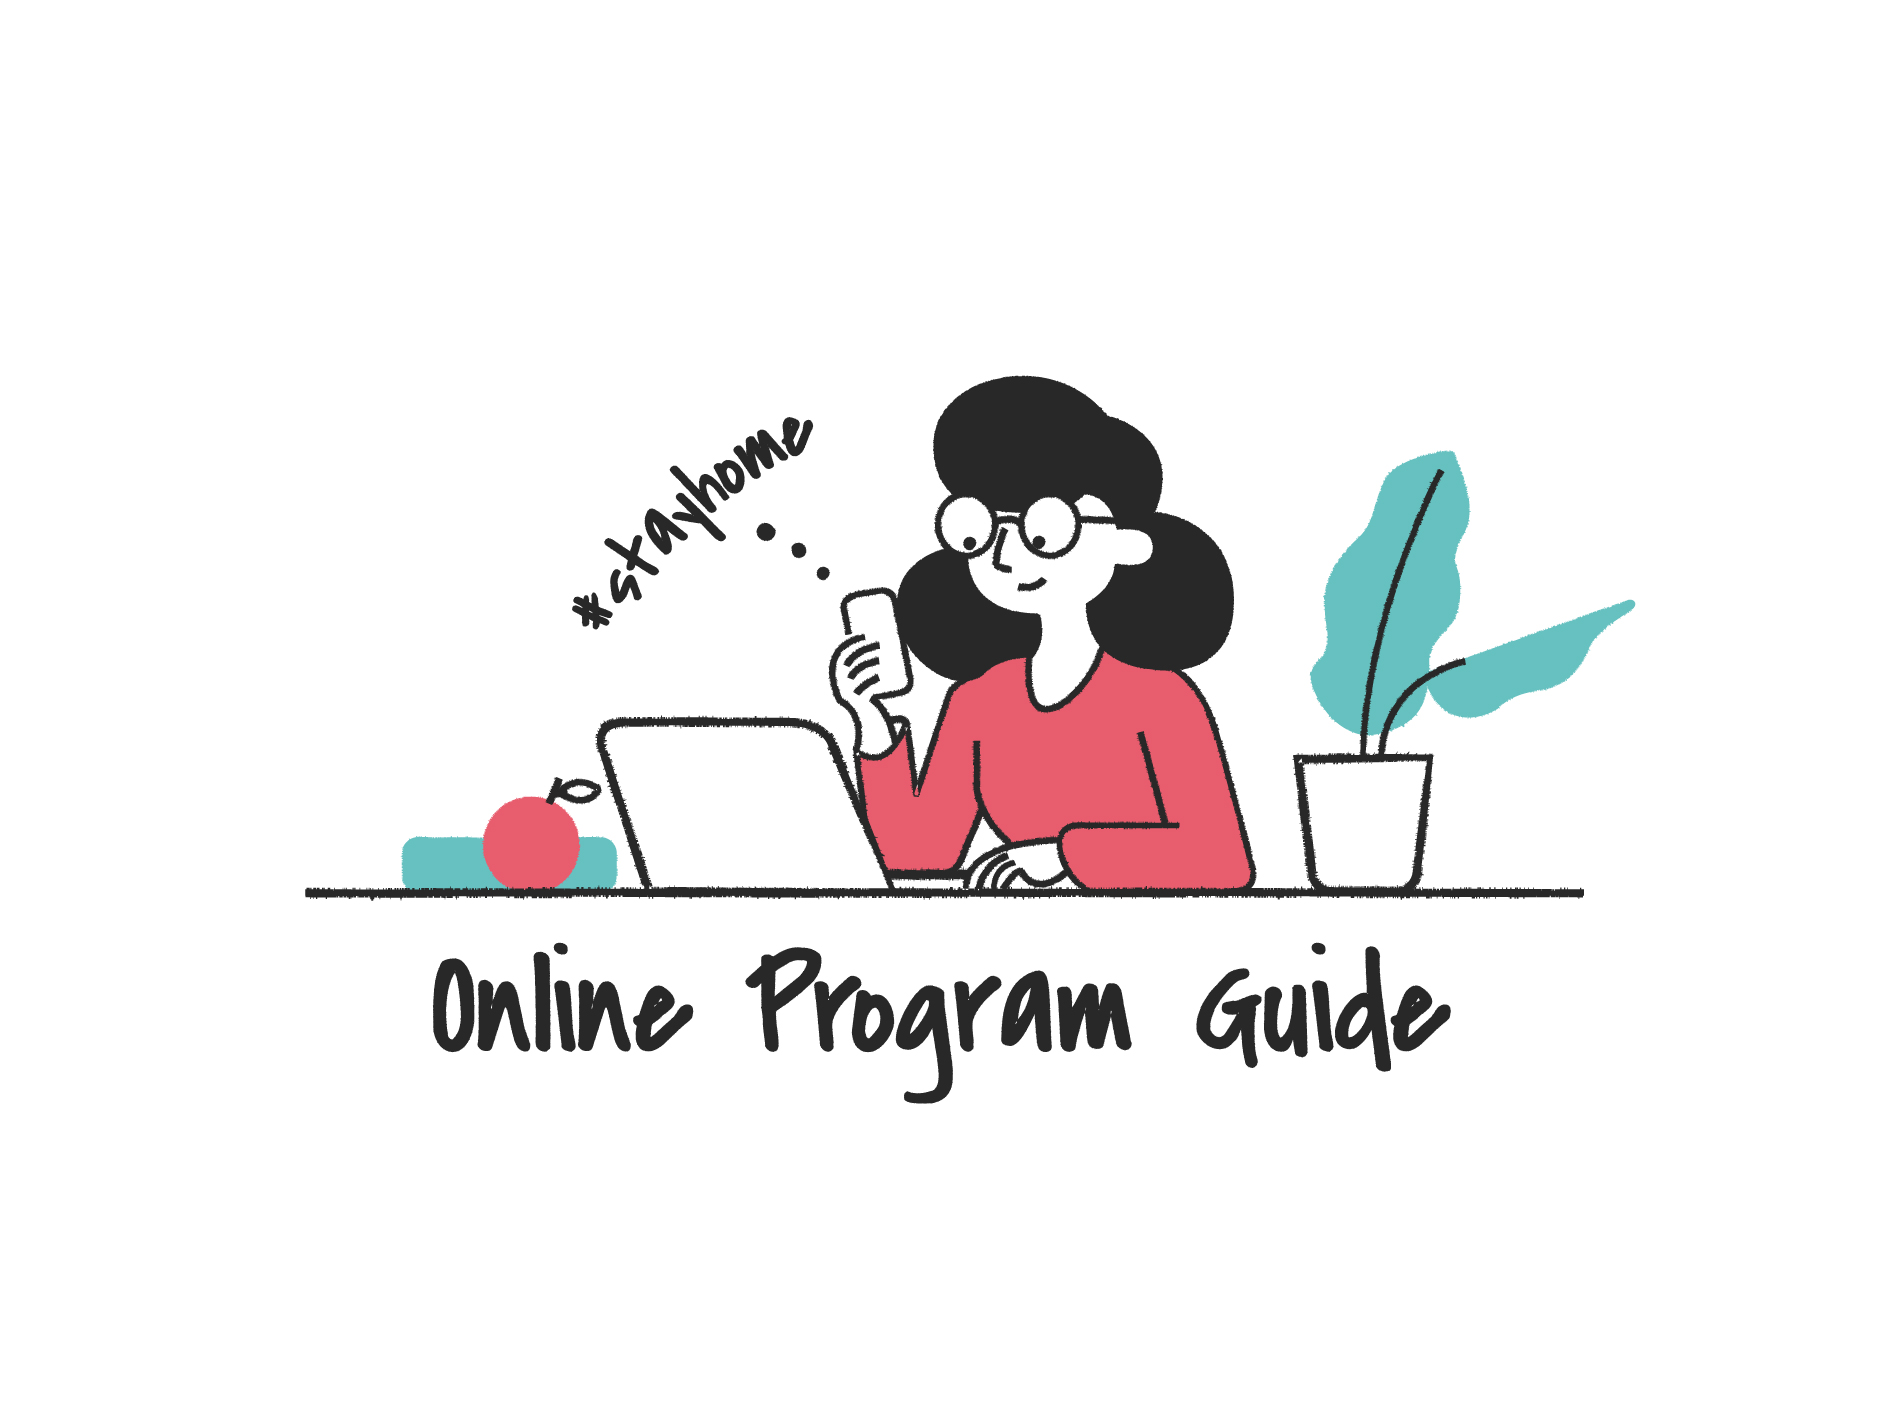 HYPE | Weekly online program guide